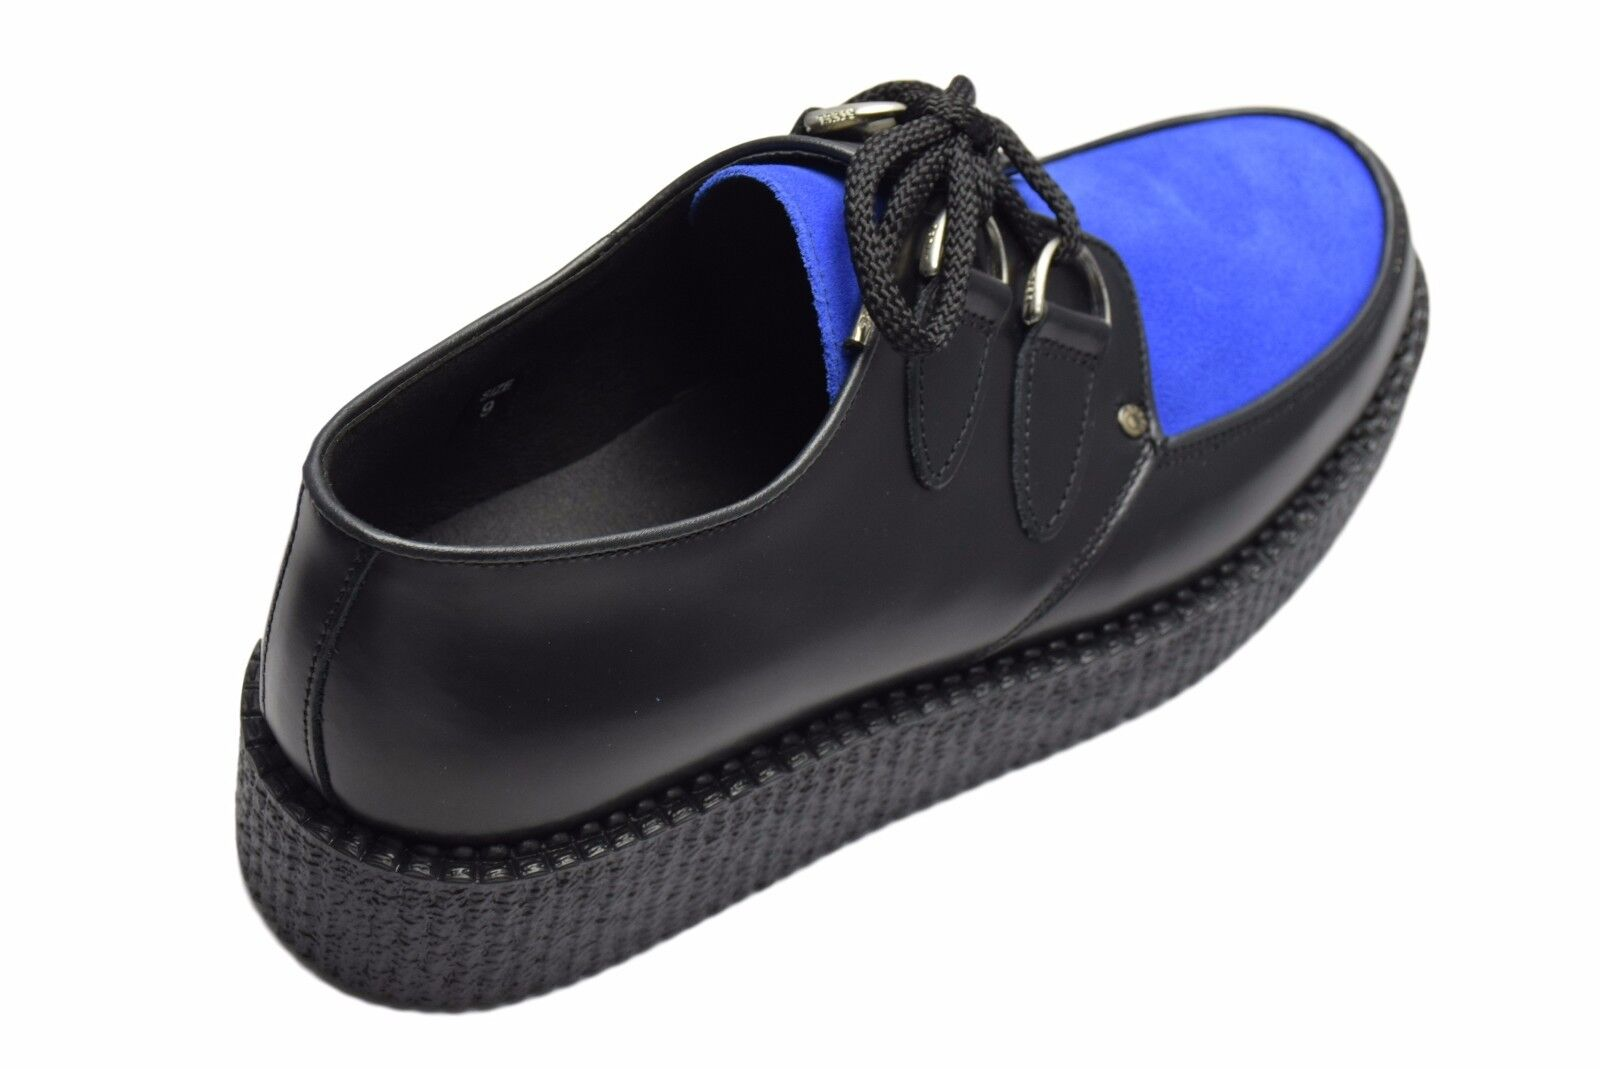 Steel Ground Schuhes schwarz Leder Blau Suede Front Low Creepers D Ring Casual